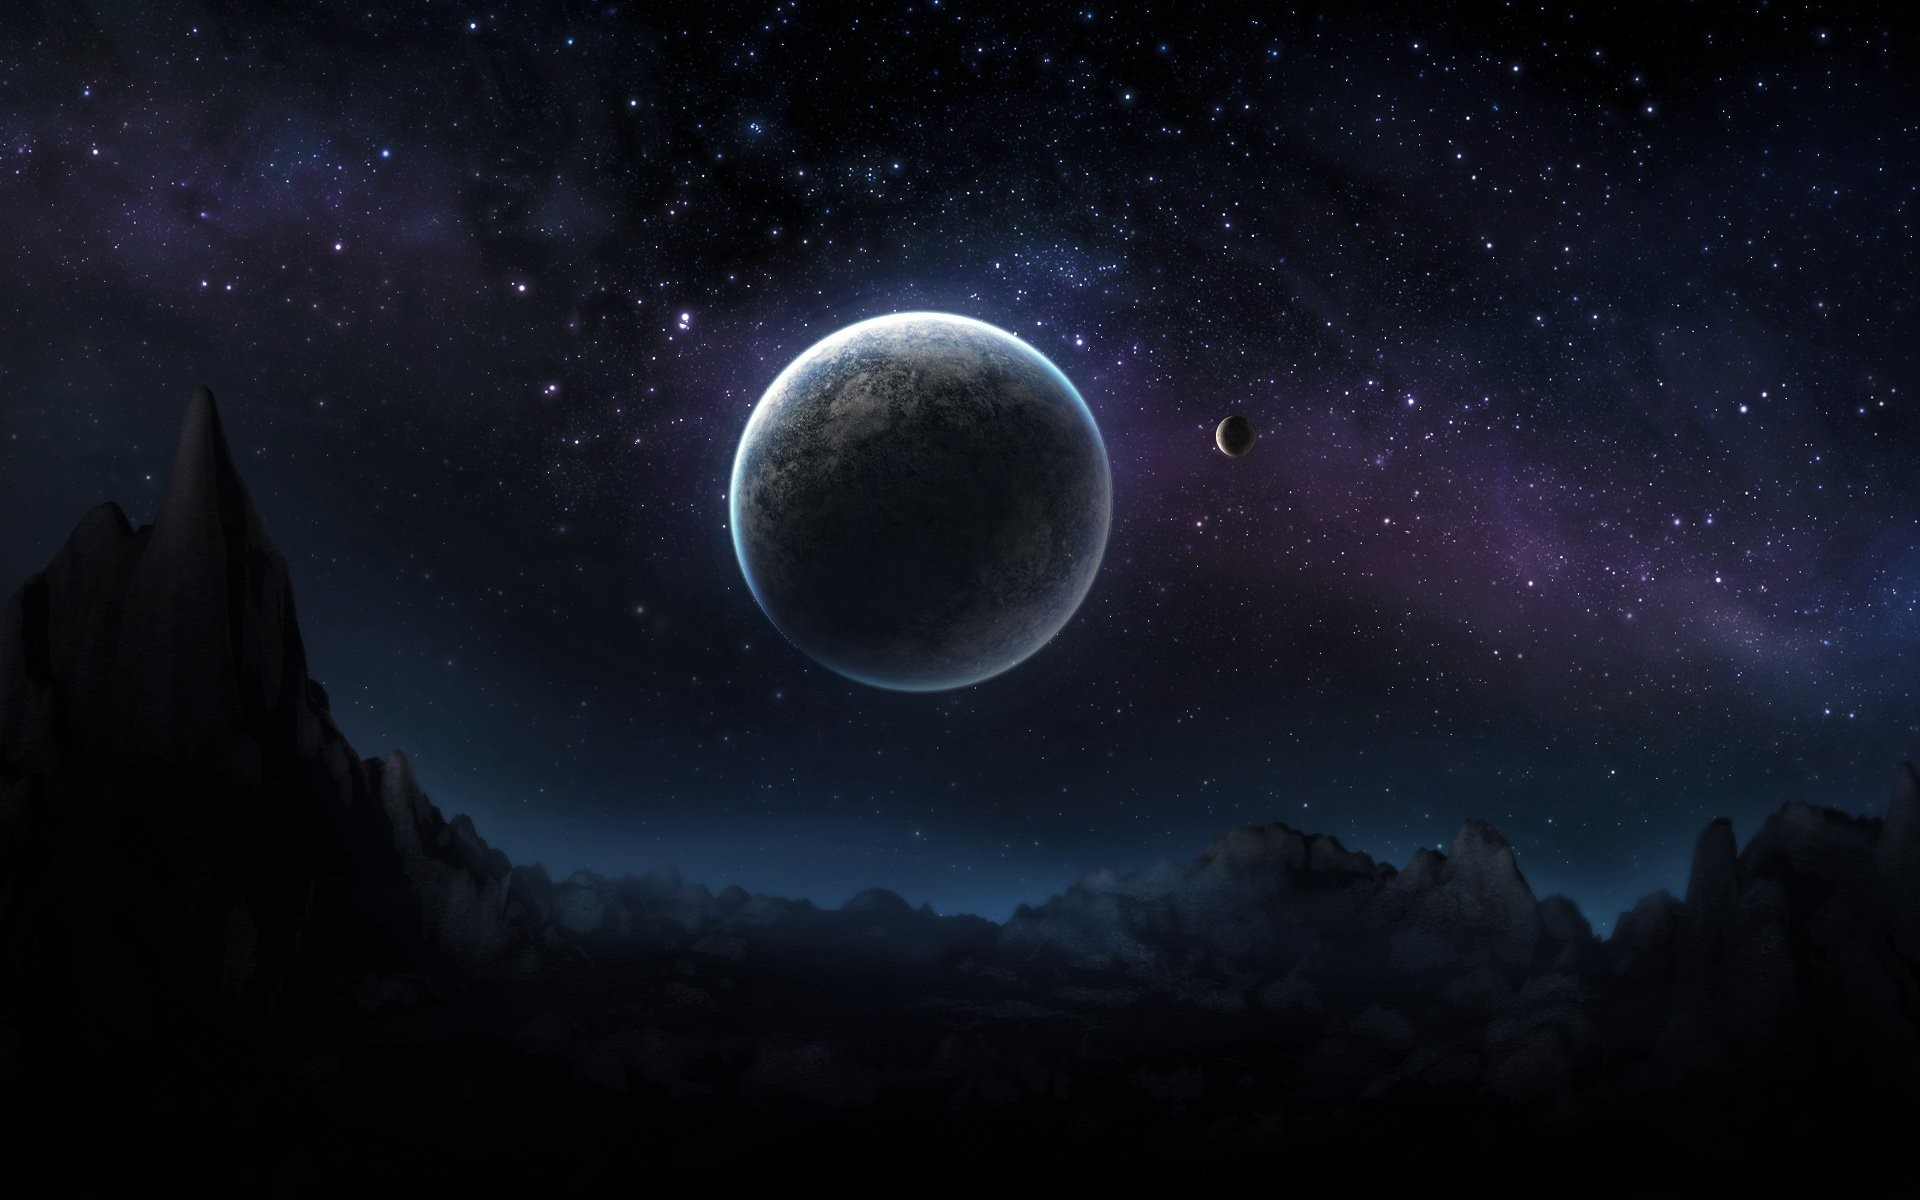 Blue space wallpaper hd 72 images - Wallpapers space hd ...